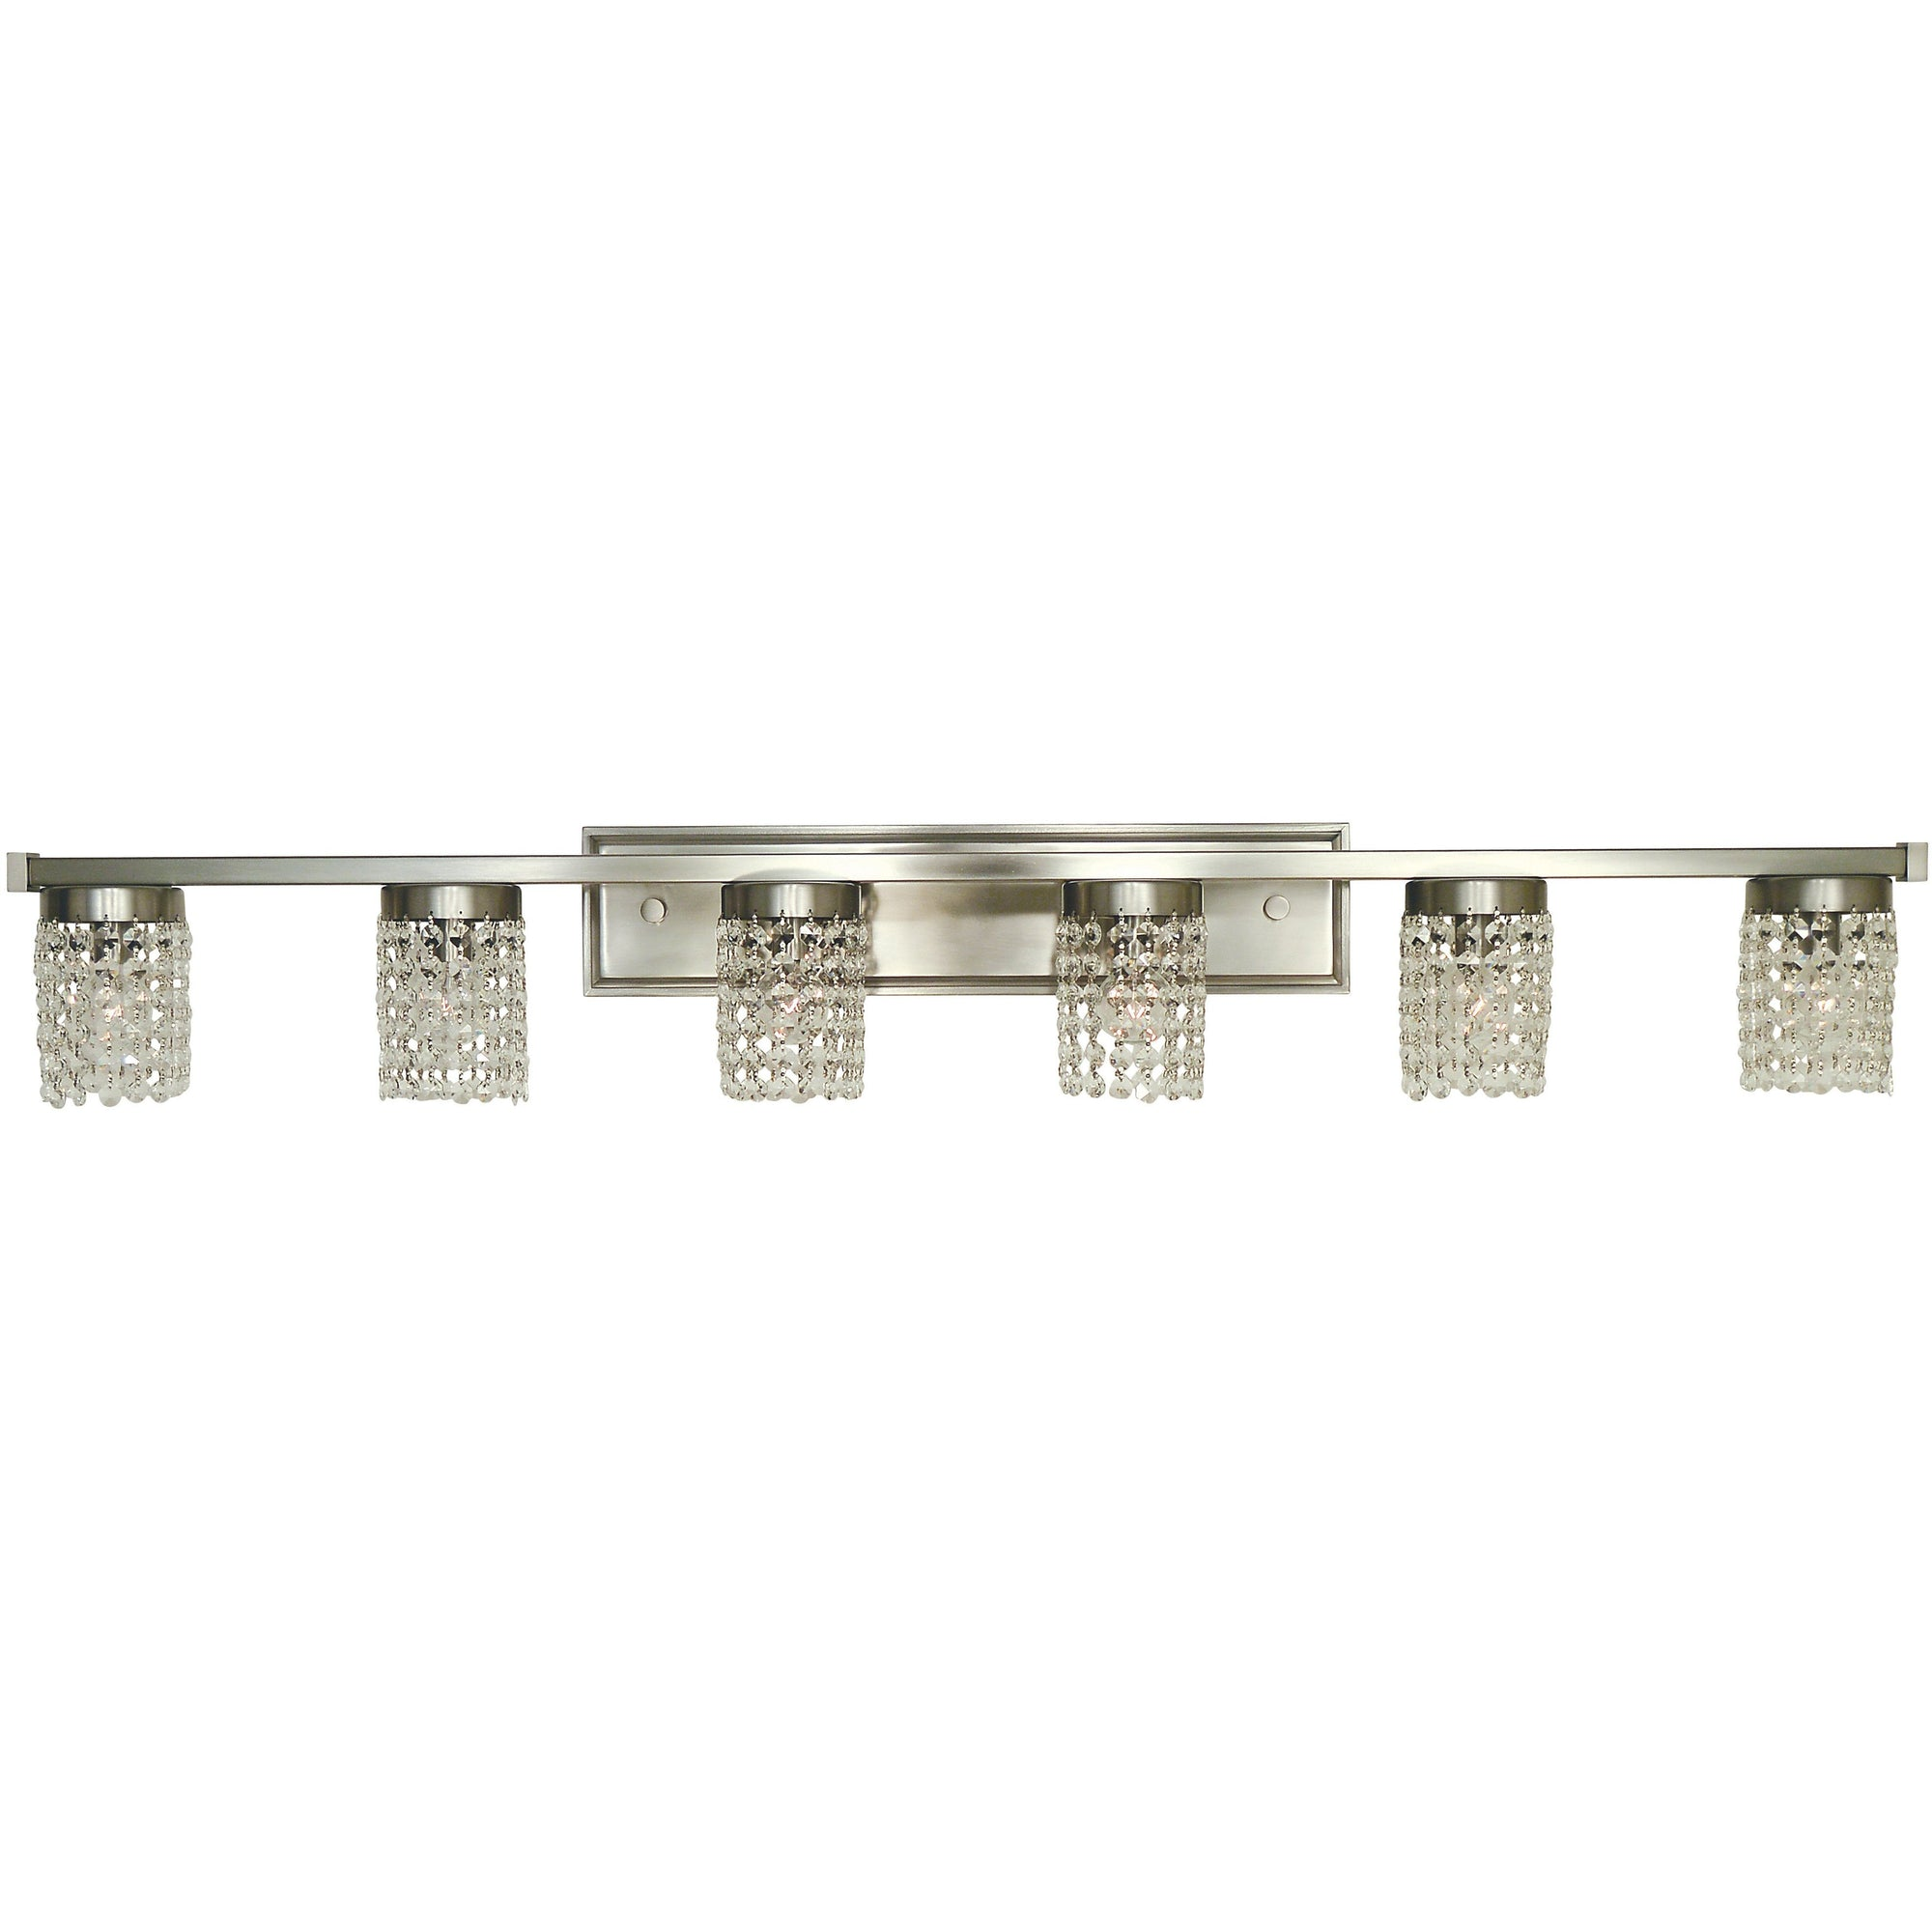 Framburg Wall Sconces Brushed Nickel 6-Light Brushed Nickel Gemini Sconce by Framburg 4746